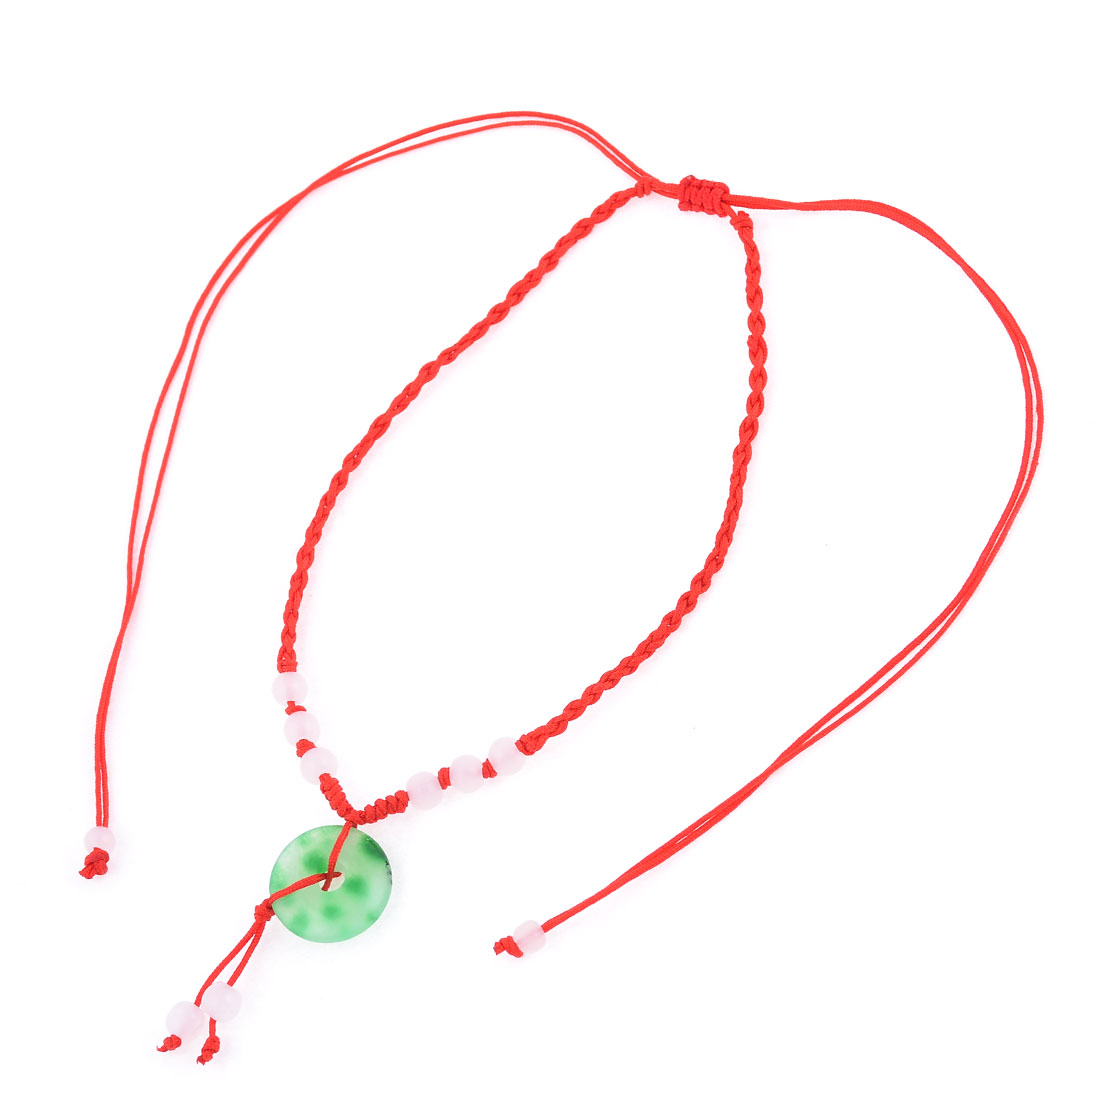 Red Pull String Closure Round Bowlder Handmade Braided Necklace Cord